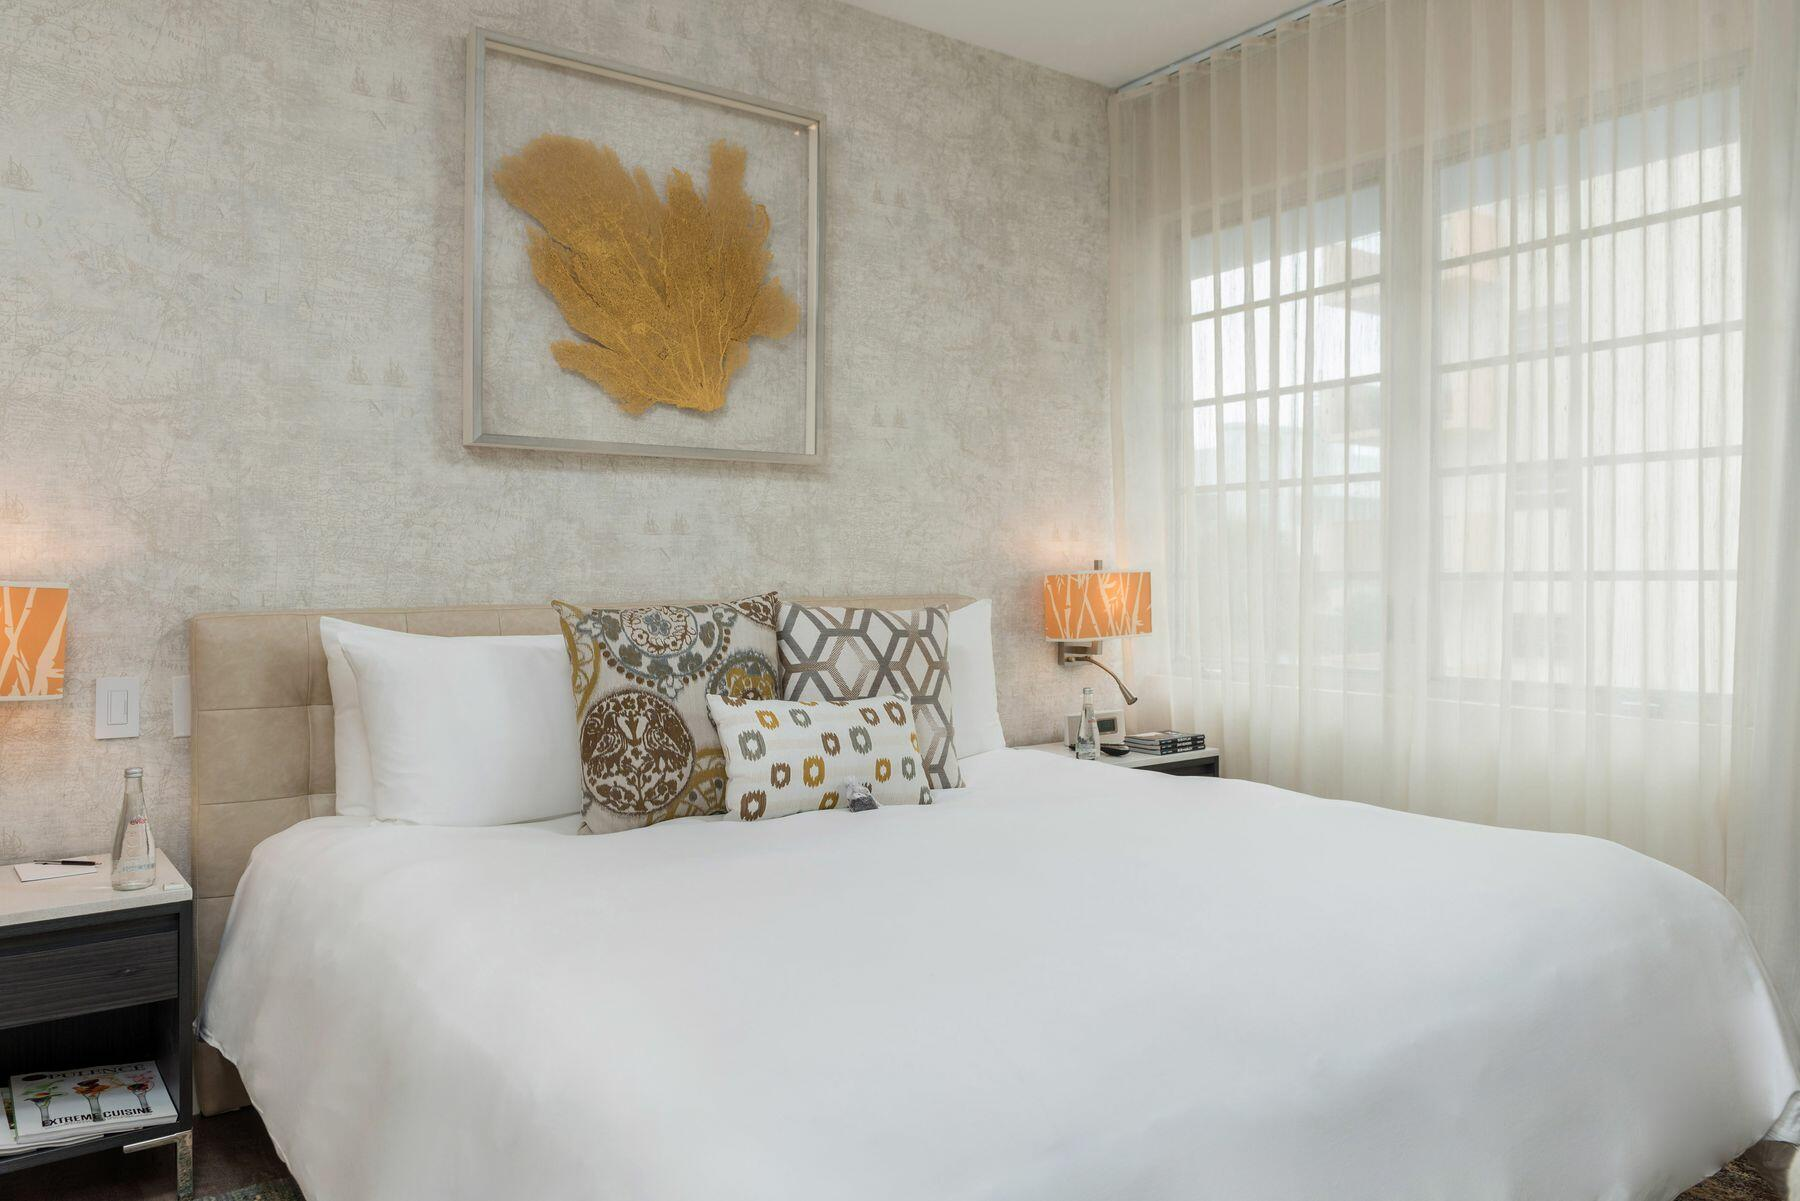 cozy bed with white sheets